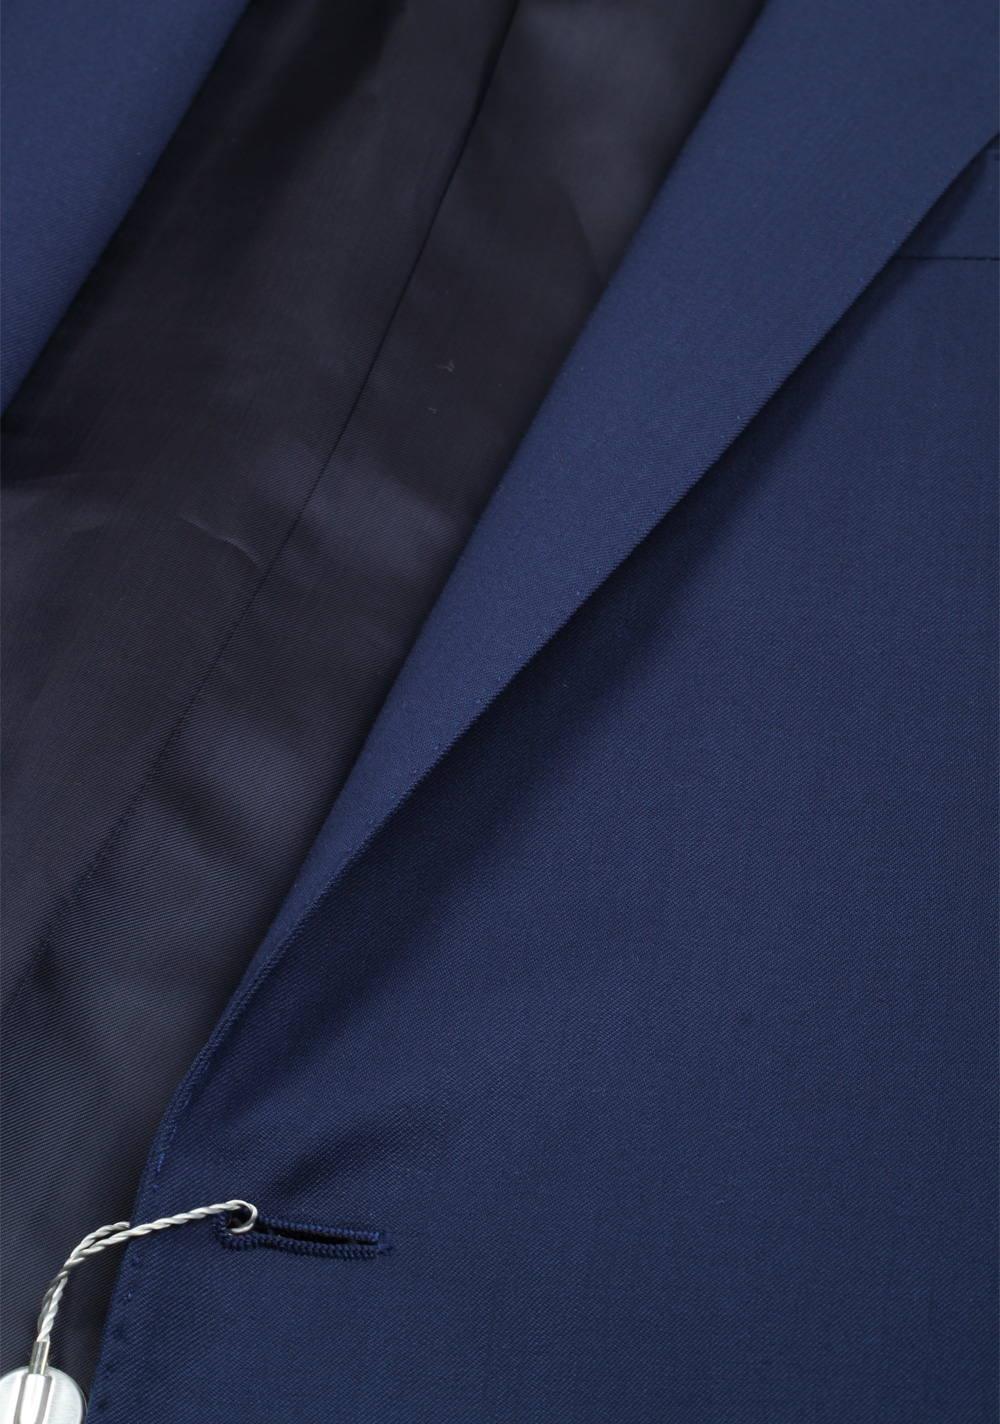 Ralph Lauren Purple Label Blue Suit Size 50L / 40L U.S. In Wool | Costume Limité